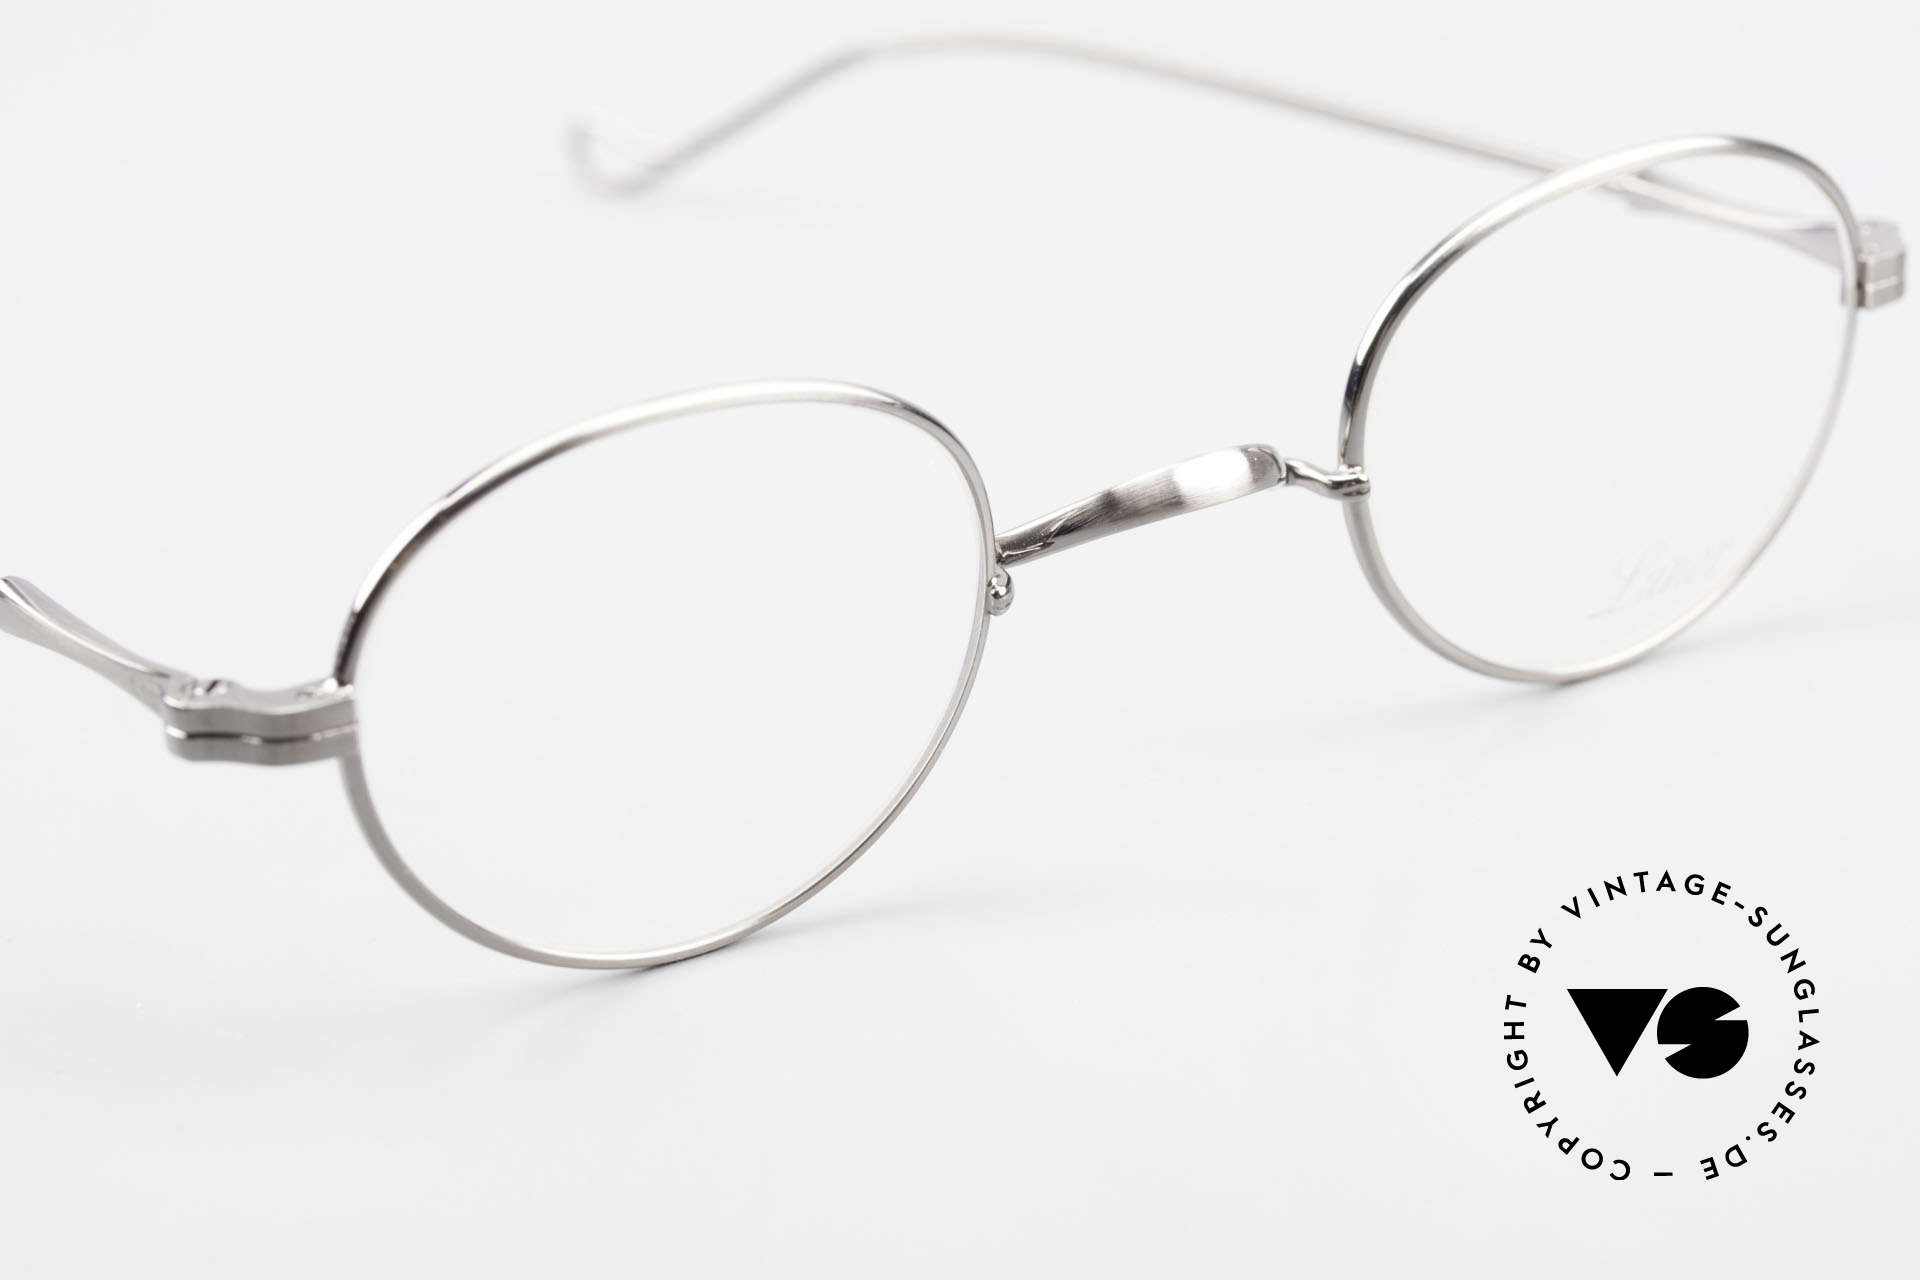 Lunor II 20 Lunor Eyeglasses Unisex Small, unworn RARITY for all lovers of quality from app. 1999, Made for Men and Women